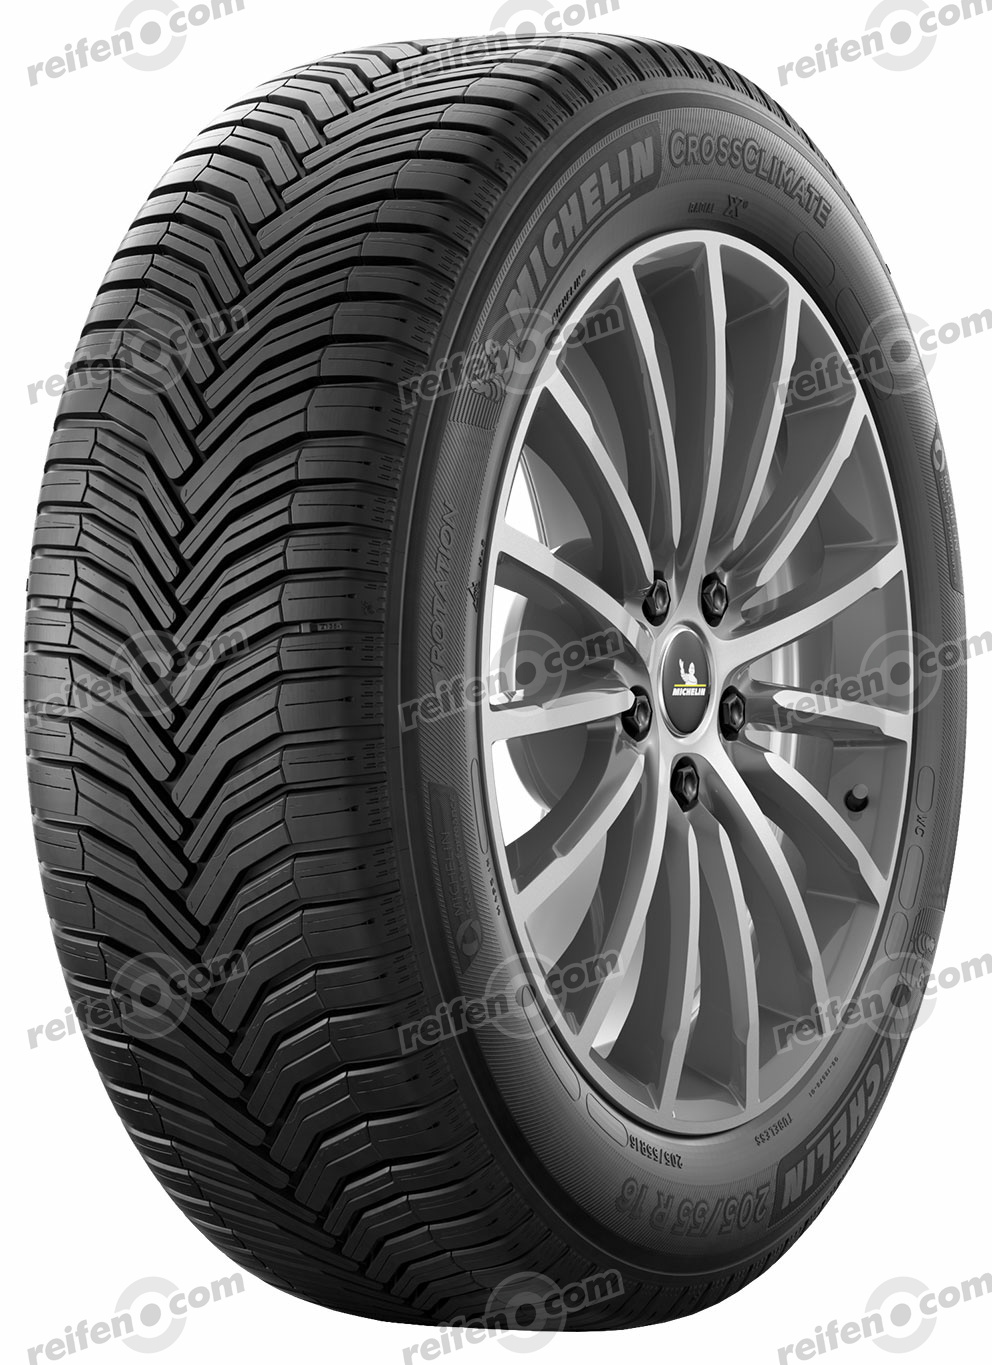 165/70 R14 85T Cross Climate+ XL  Cross Climate+ XL